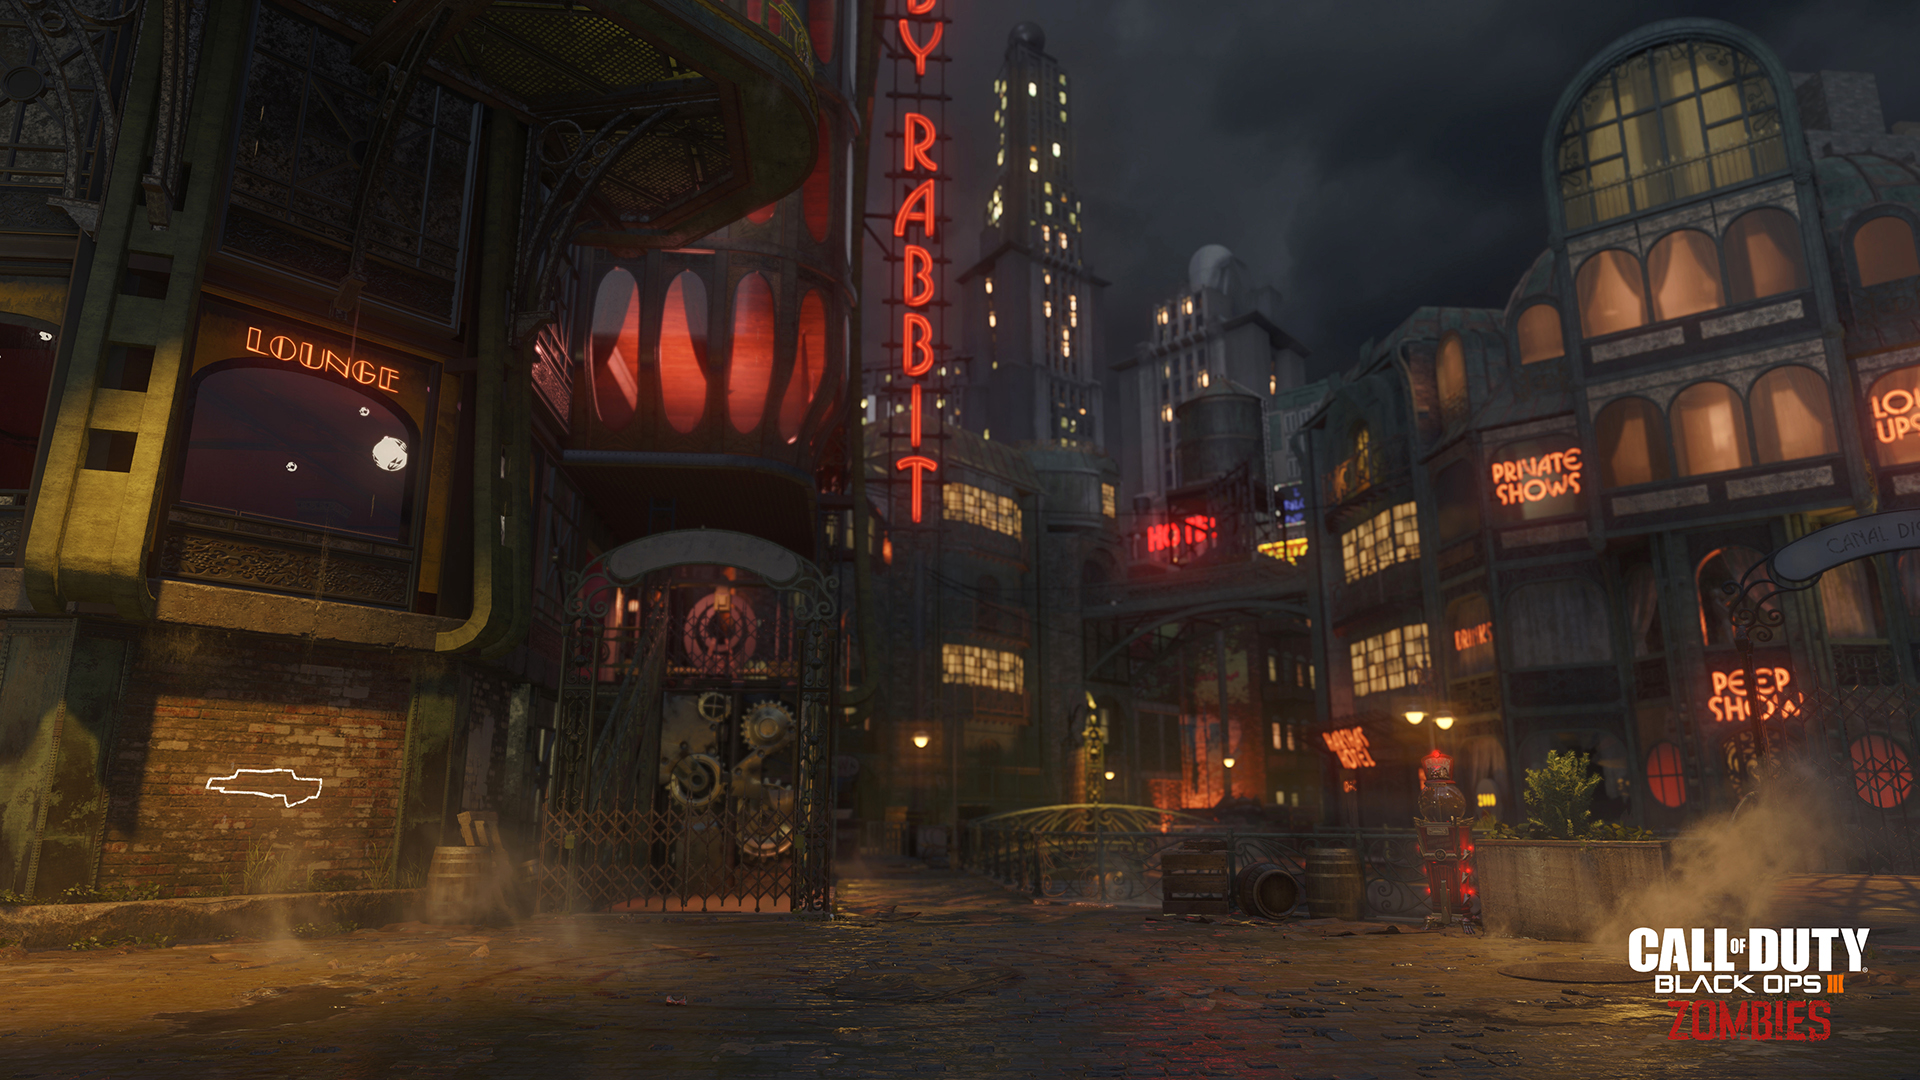 Shadows_of_Evil_Morg_City_Reveal_Image_B